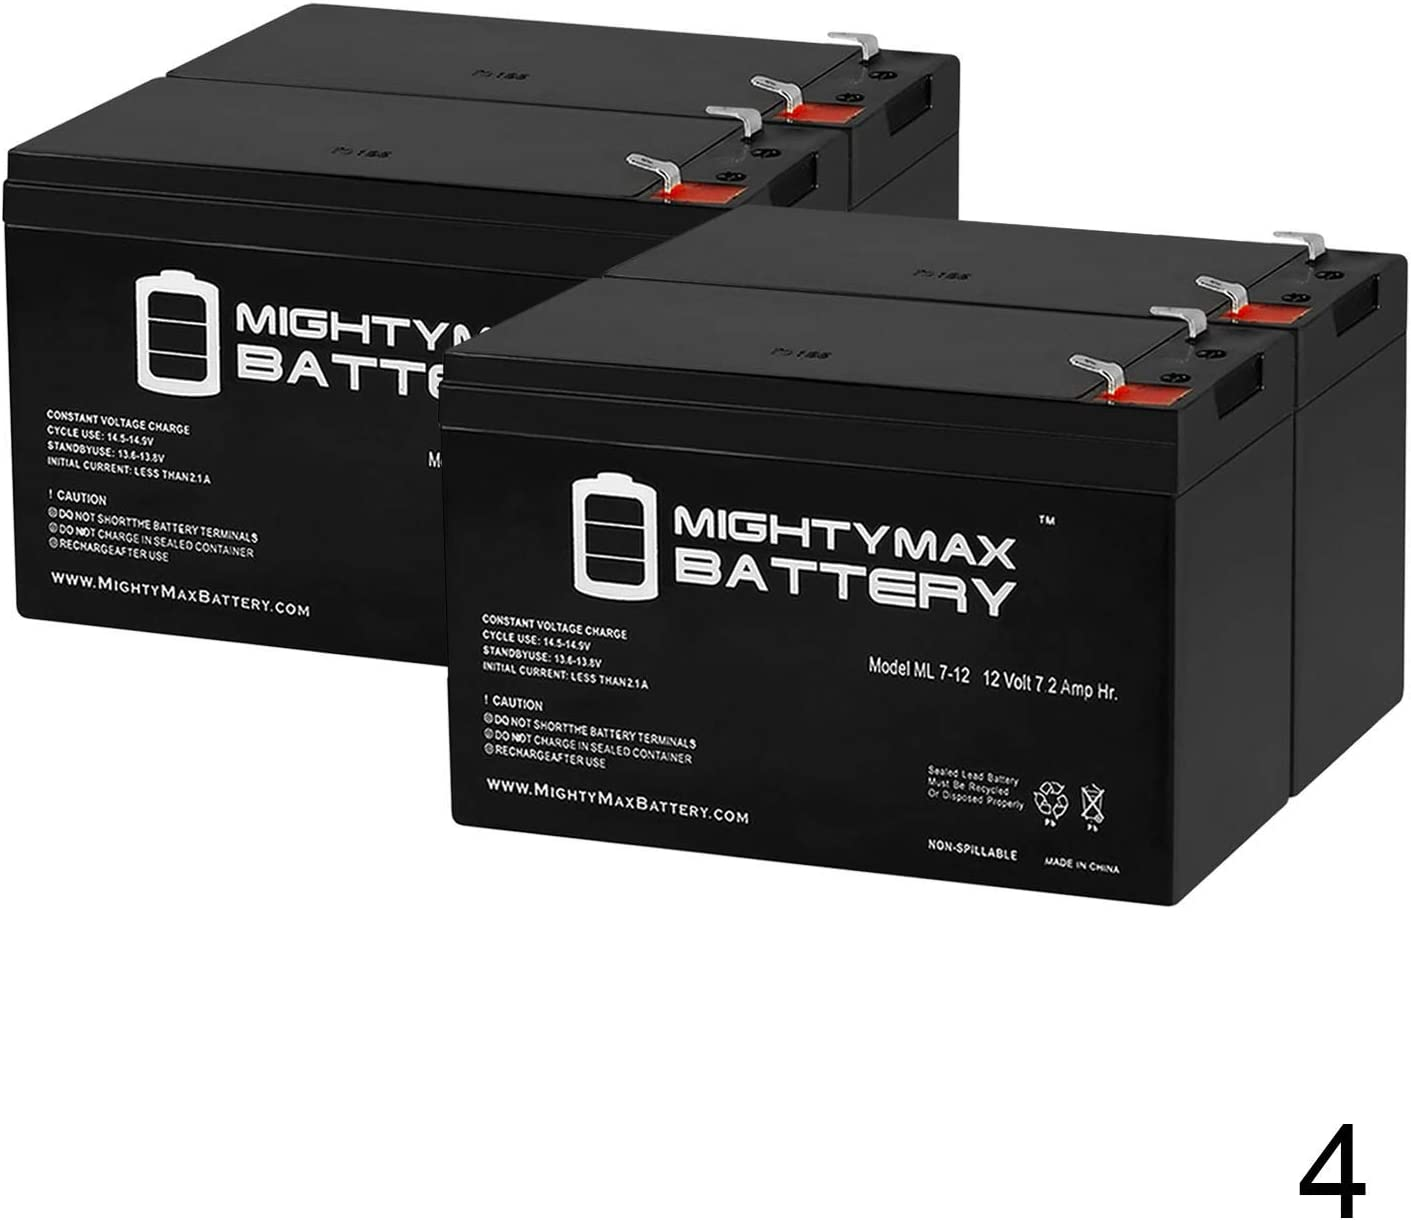 12V 7.2AH Replacement Battery for CyberPower CPS1500AVR UPS - 4 Pack